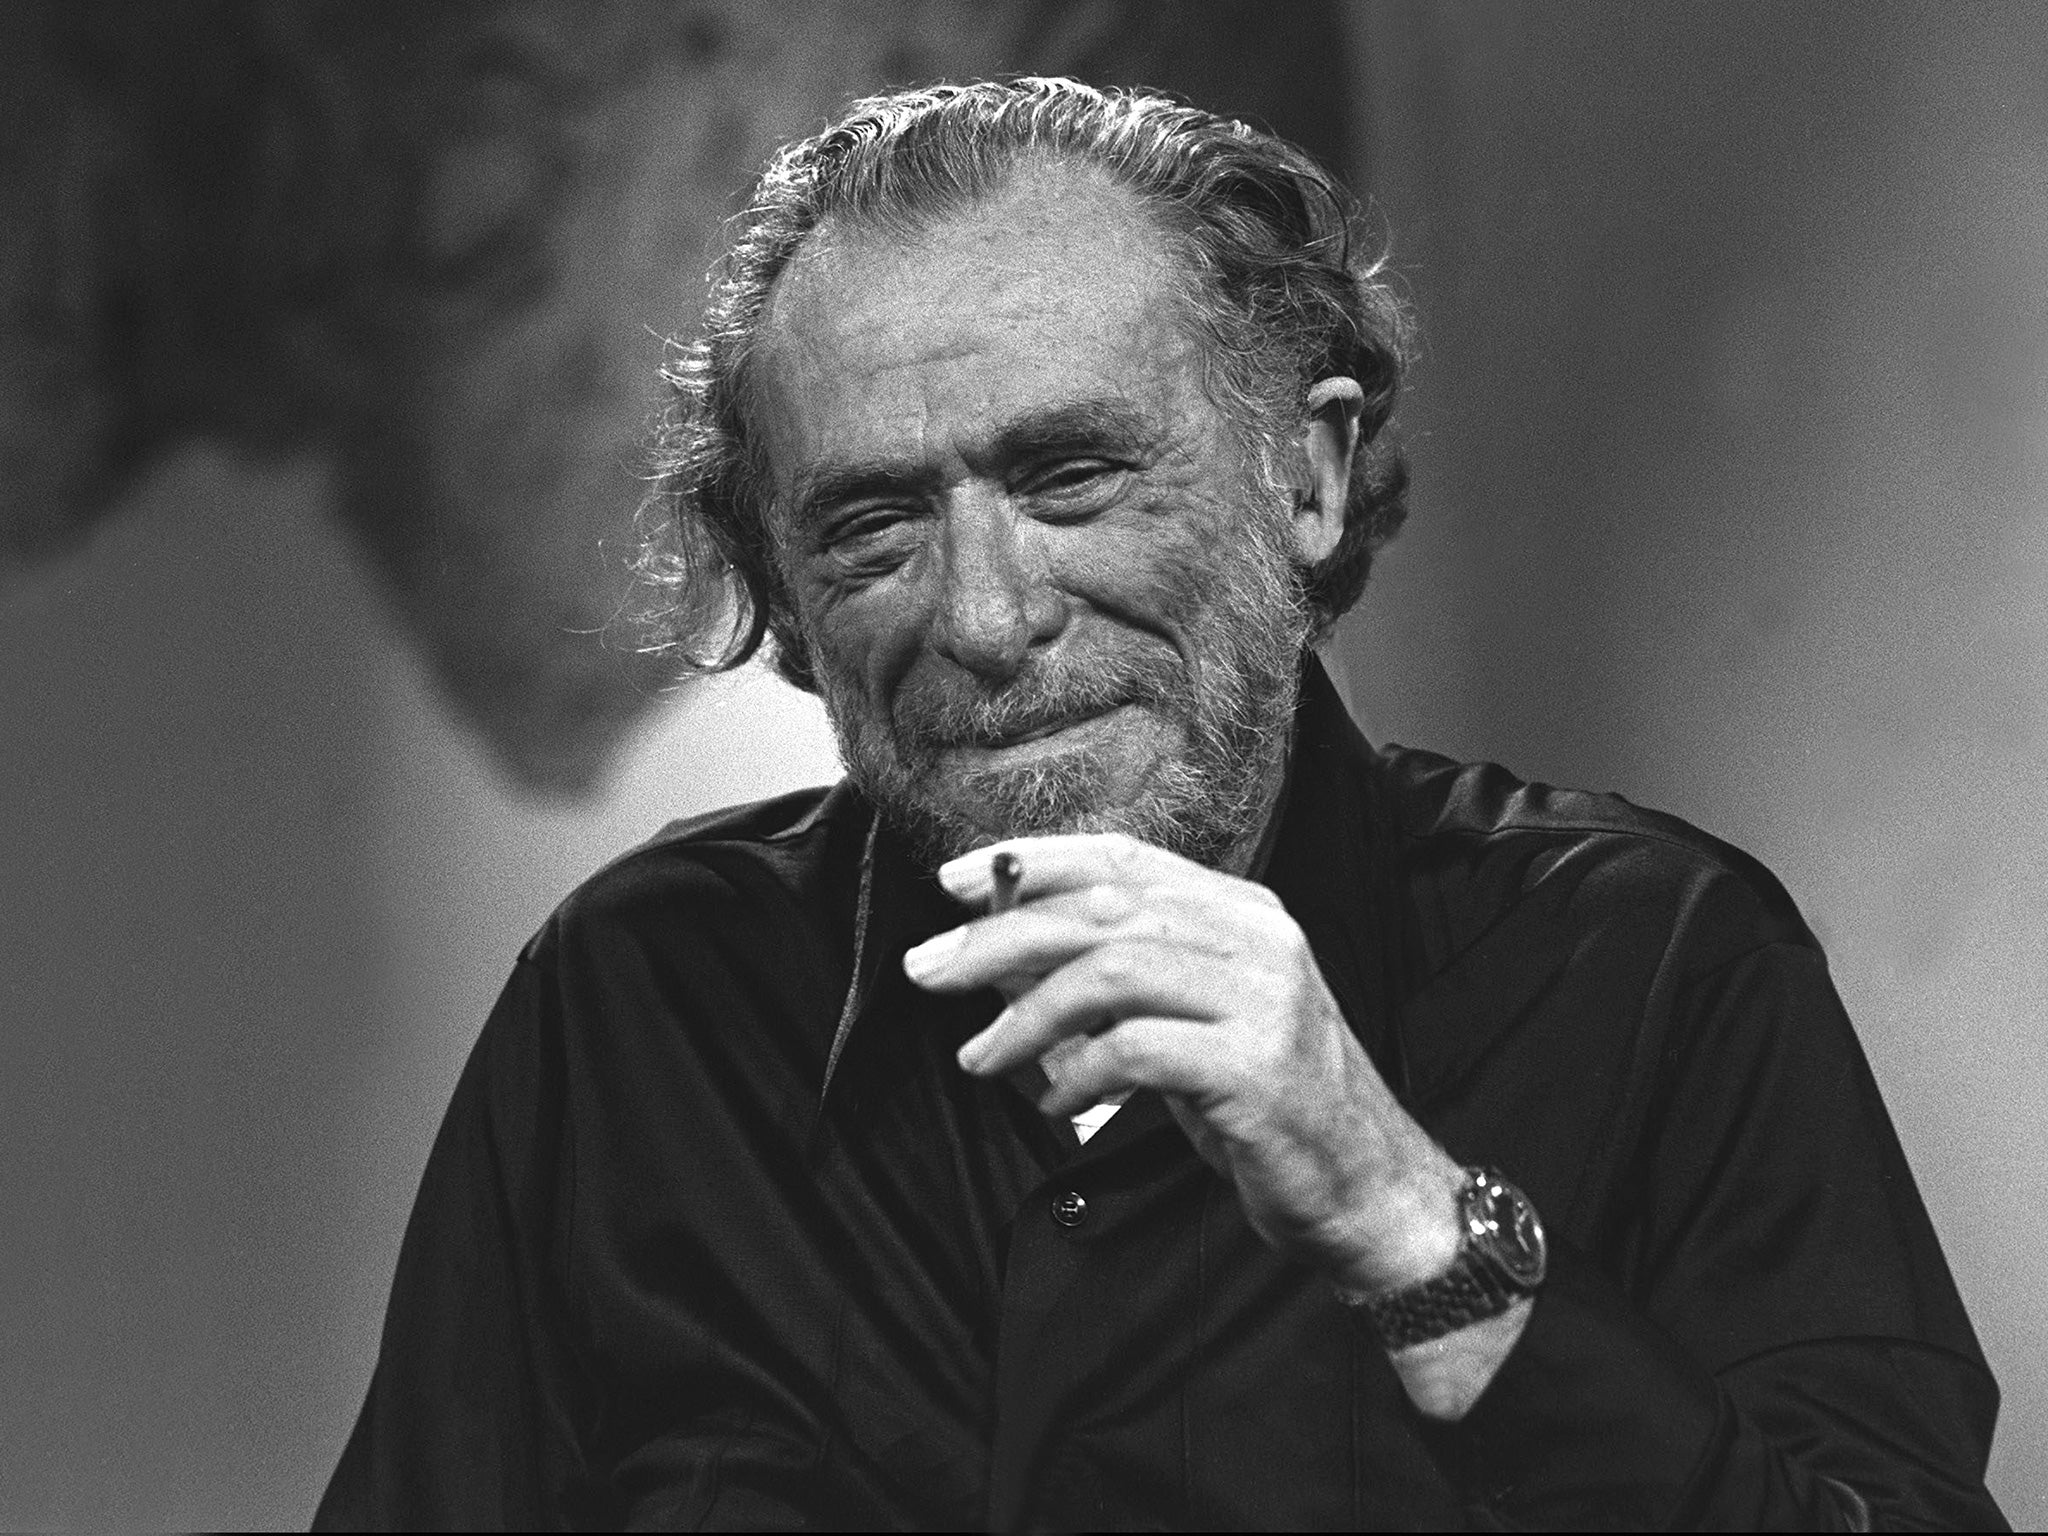 Charles Bukowski - Neither Bought For Gold, Nor To The Devil Sold